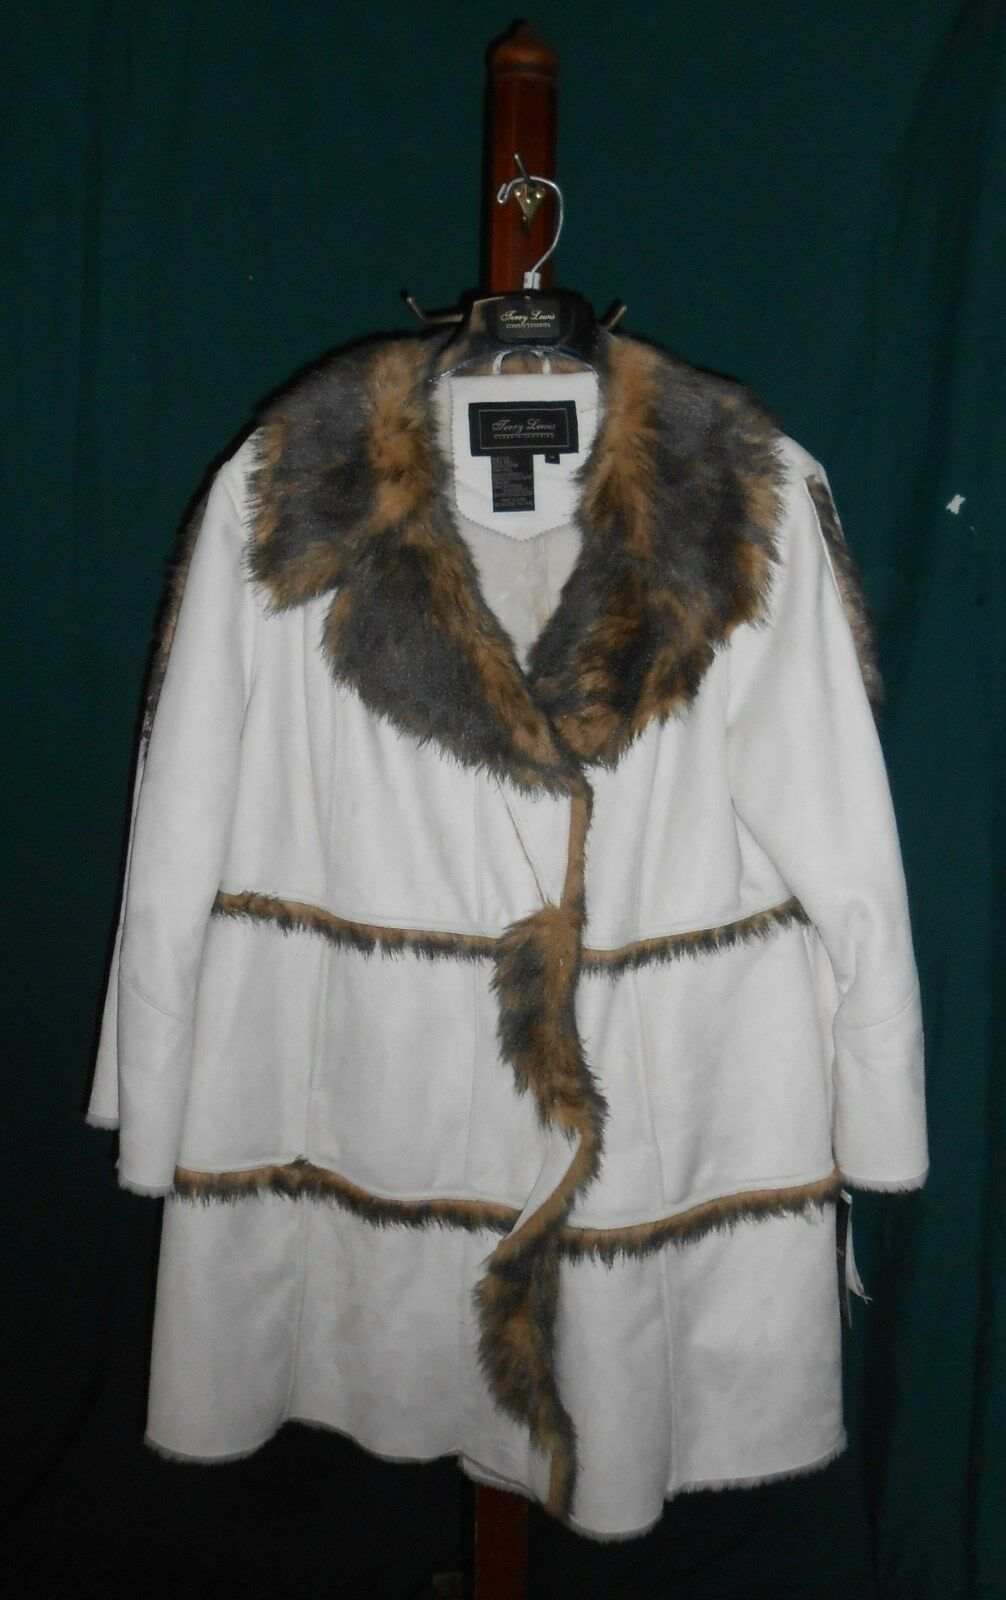 TERRY LEWIS CLASSIC LUXURIES  IVORY FAUX SUEDE COAT W FAUX FUR TRIM  1X, NEW